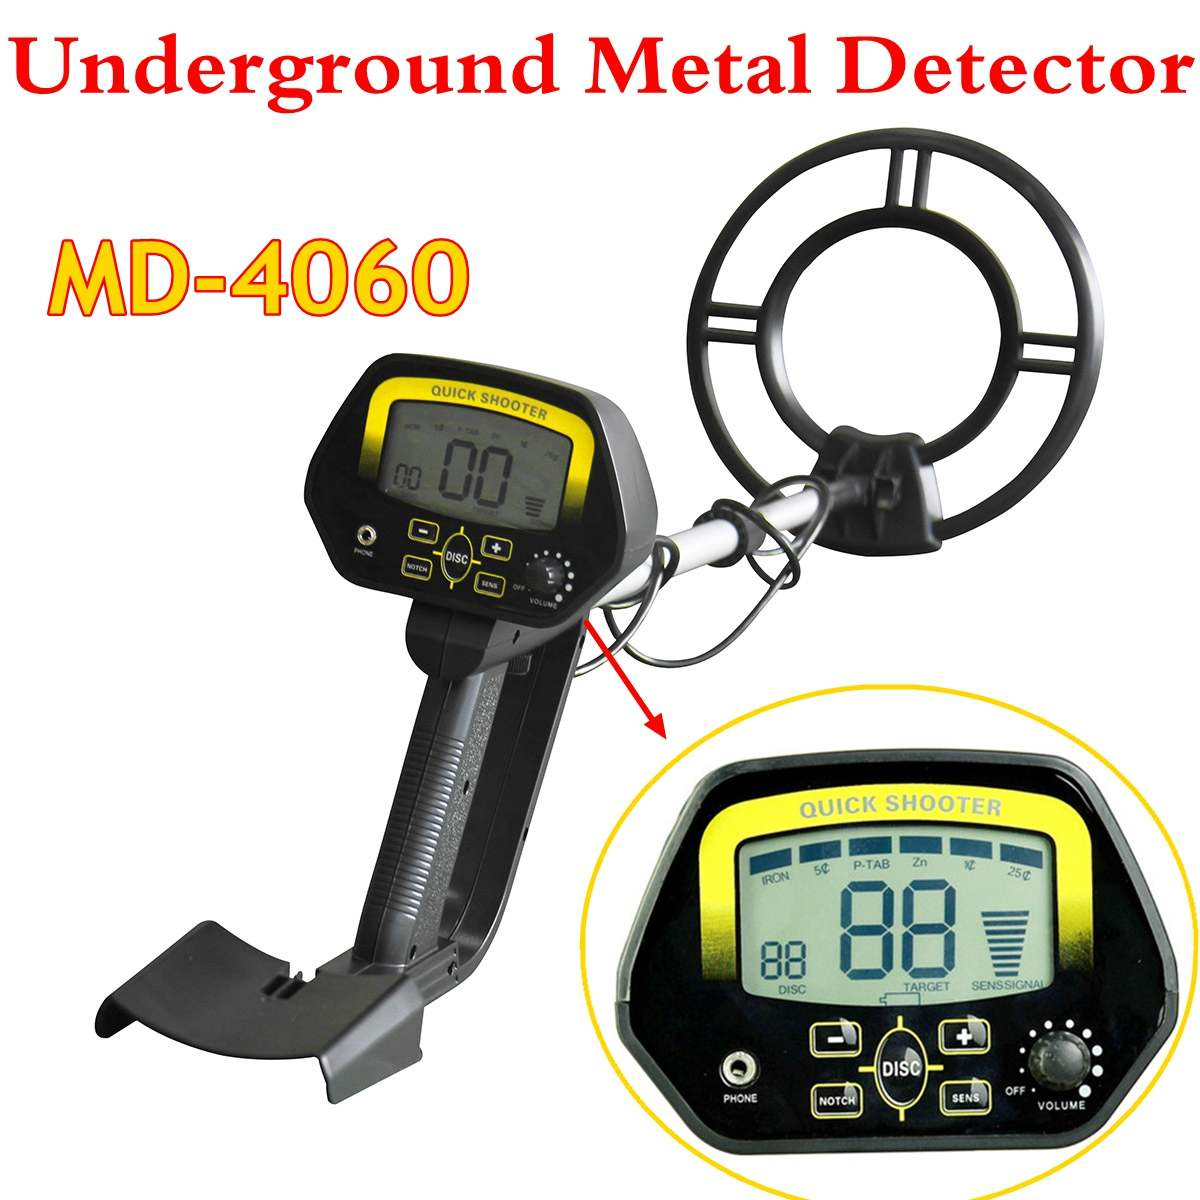 NEW <font><b>MD</b></font>-<font><b>4060</b></font> Underground Metal Detector Portable Light Weight Underground Metal Detector Length Adjustable Gold Detector image